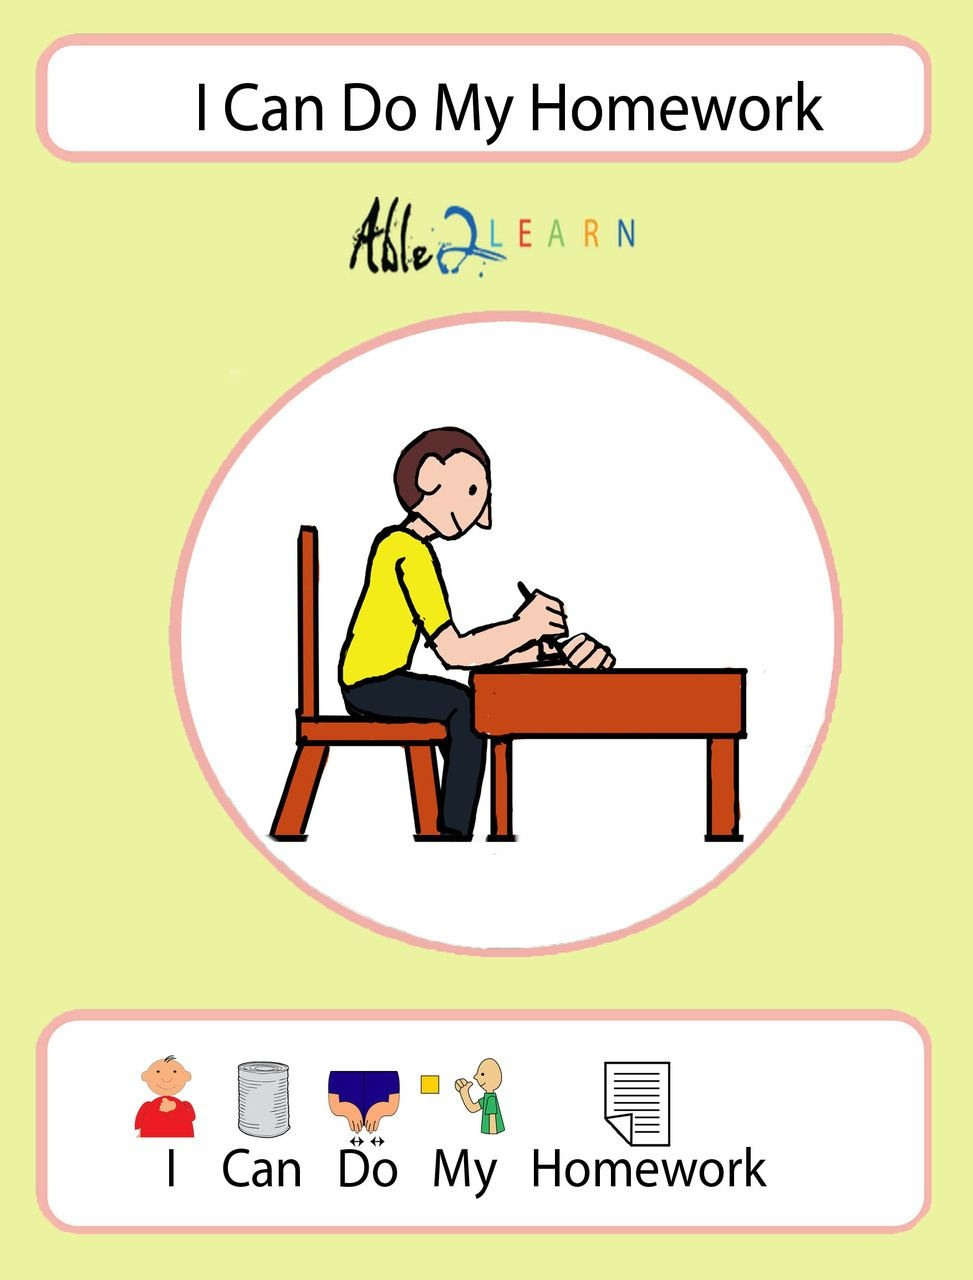 I Can Do My Homework Social Story: Pages 10   Icons   Social Stories - Free Printable Social Stories Worksheets